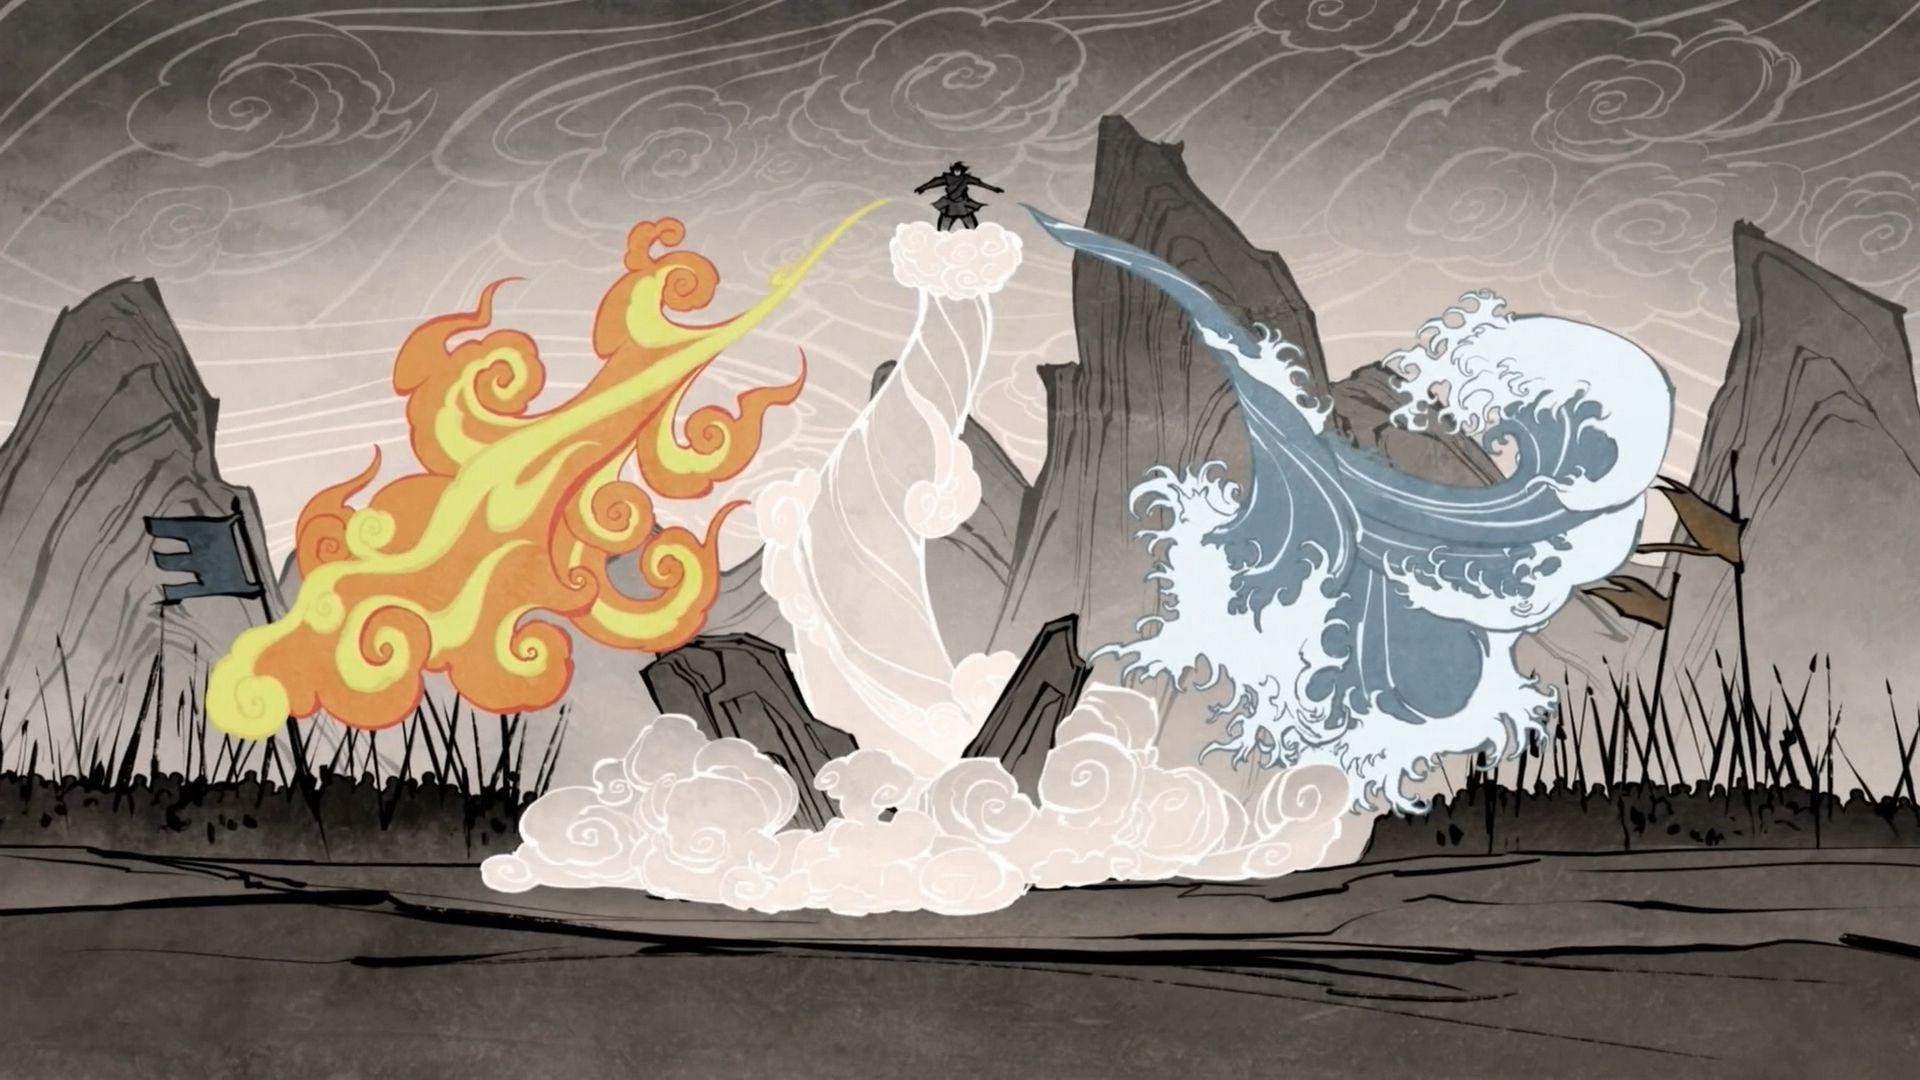 1920x1080 Avatar - The Last Airbender wallpaper thumb